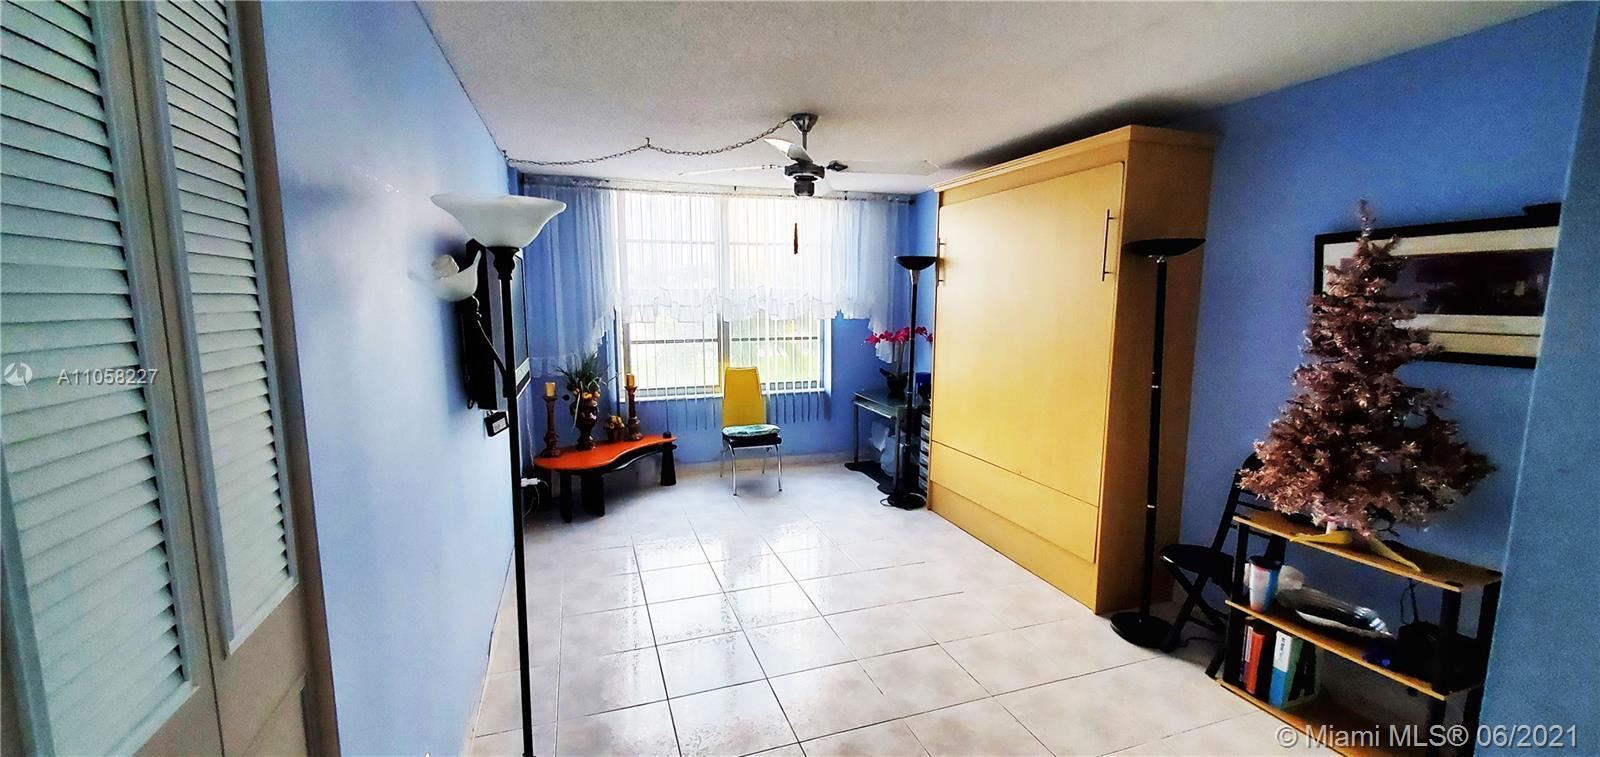 2BR CORNER APARTMENT WITH WRAP-AROUND BALCONY, IT FEATURES 1856 sq ft OF LIVING SPACE INCLUDING AN L